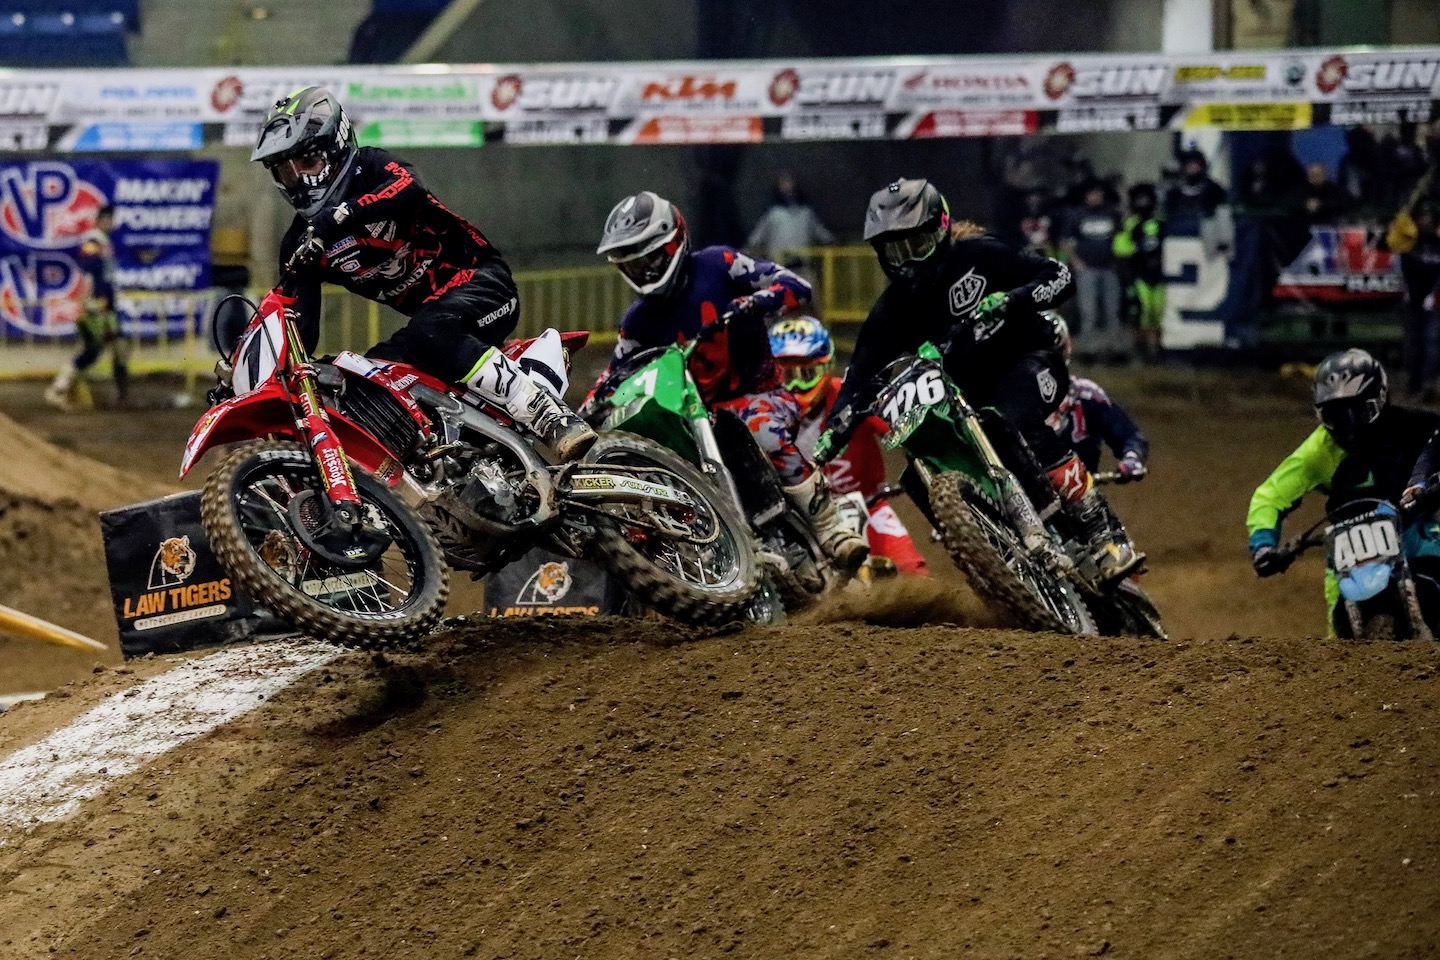 The 450 Pro Main class in Round 7 was a tight battle. (Photo- Jack Jaxson)